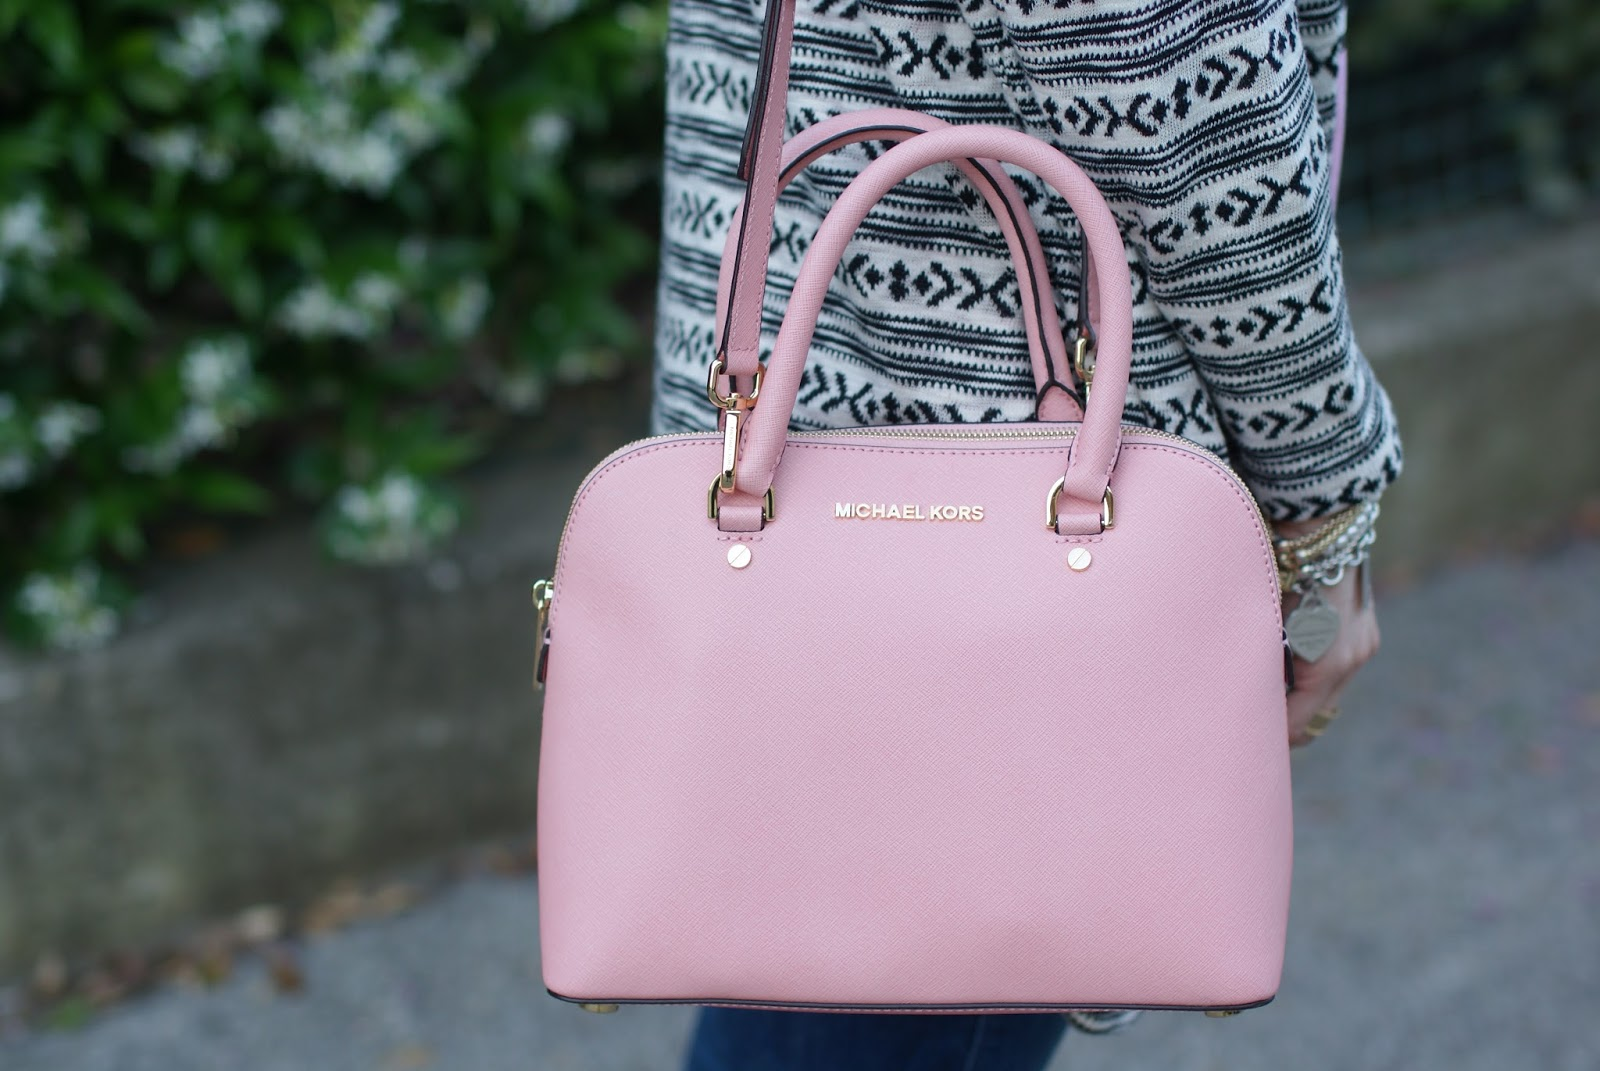 Michael Kors pink bag, Michael Kors cindy bag, Fashion and Cookies fashion blog